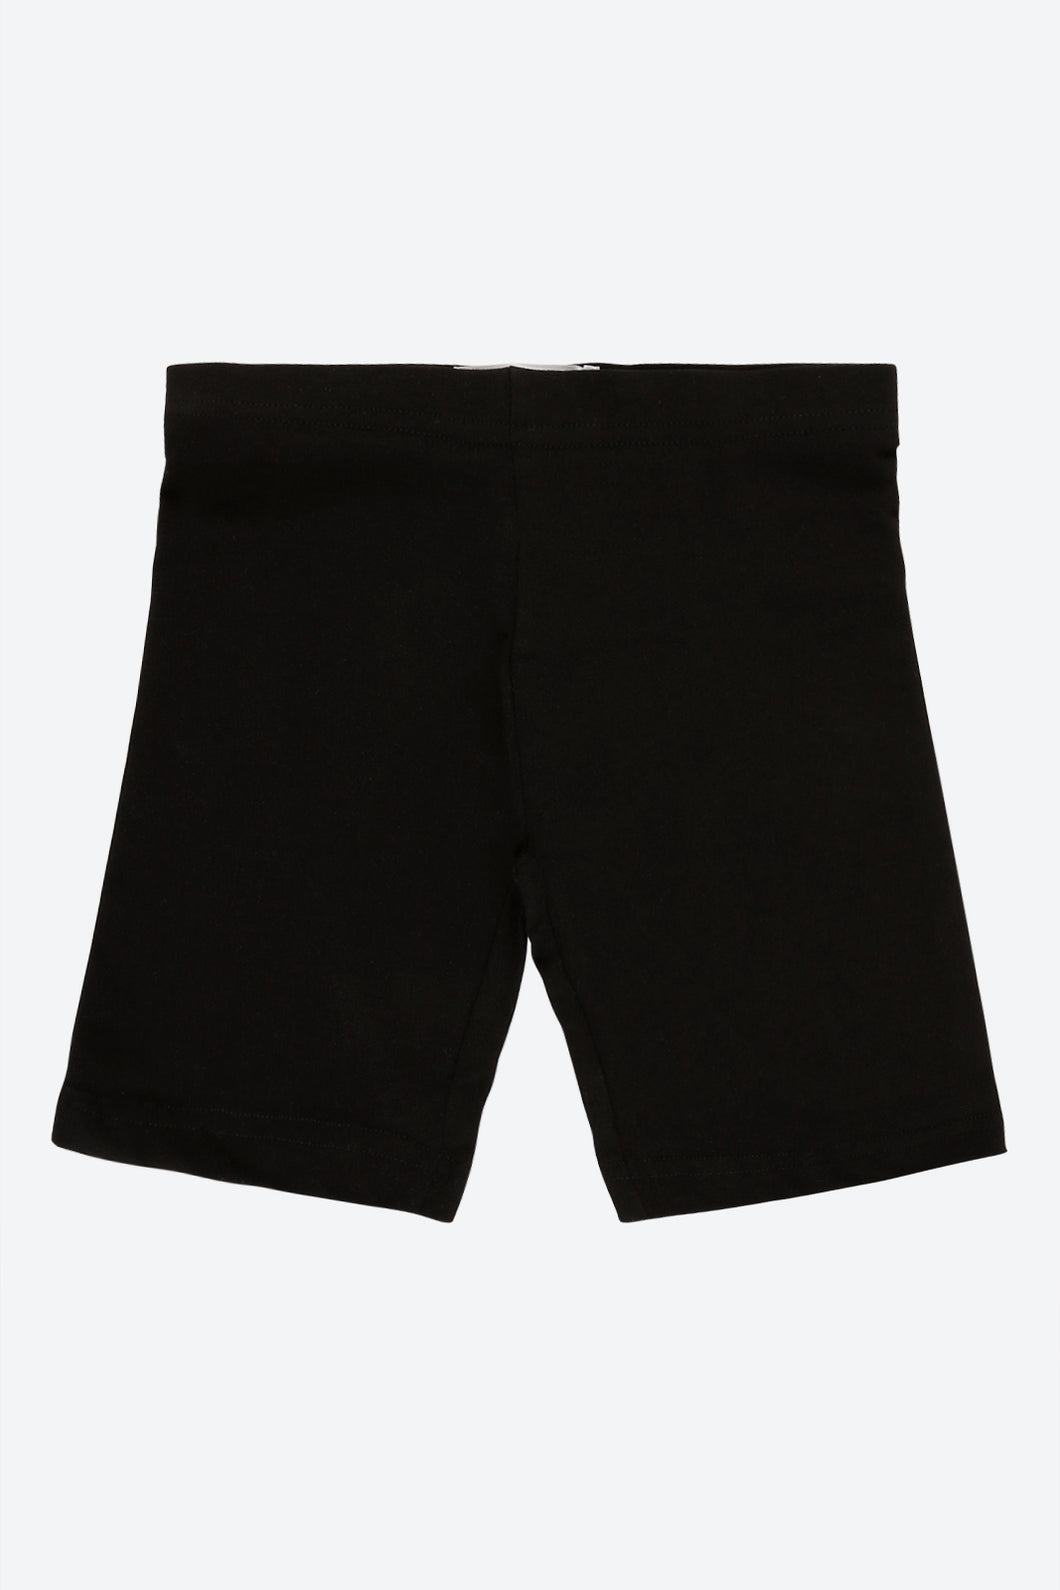 Black/White 2 Pack Cycling Shorts